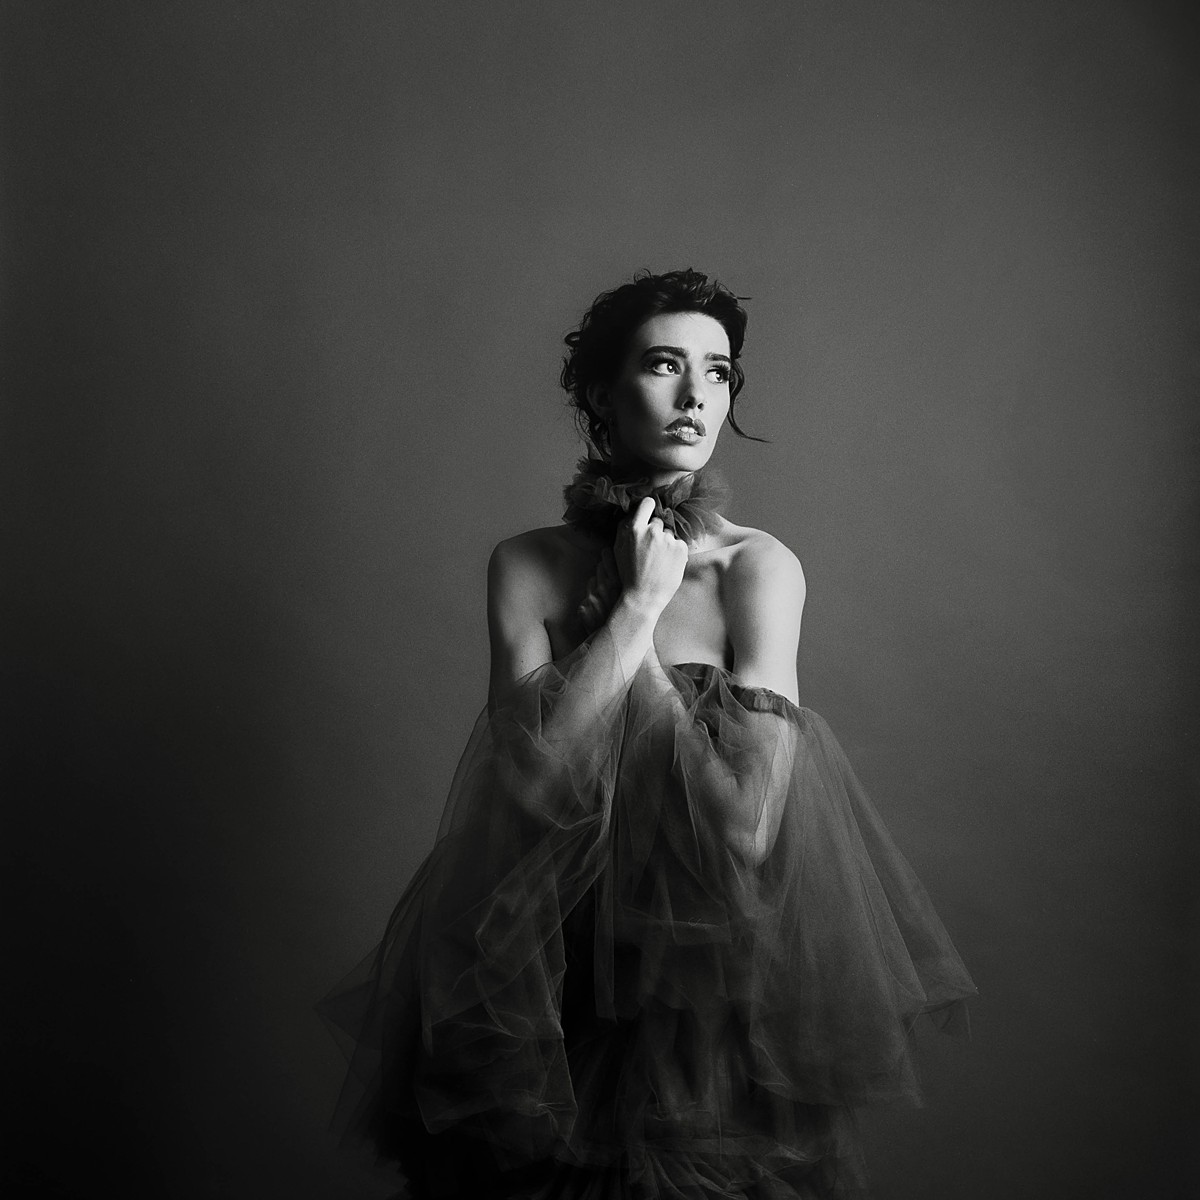 charleston sc studio sixty reid fashion black and white film editorial image on hasselblad and kodak tri-x 120